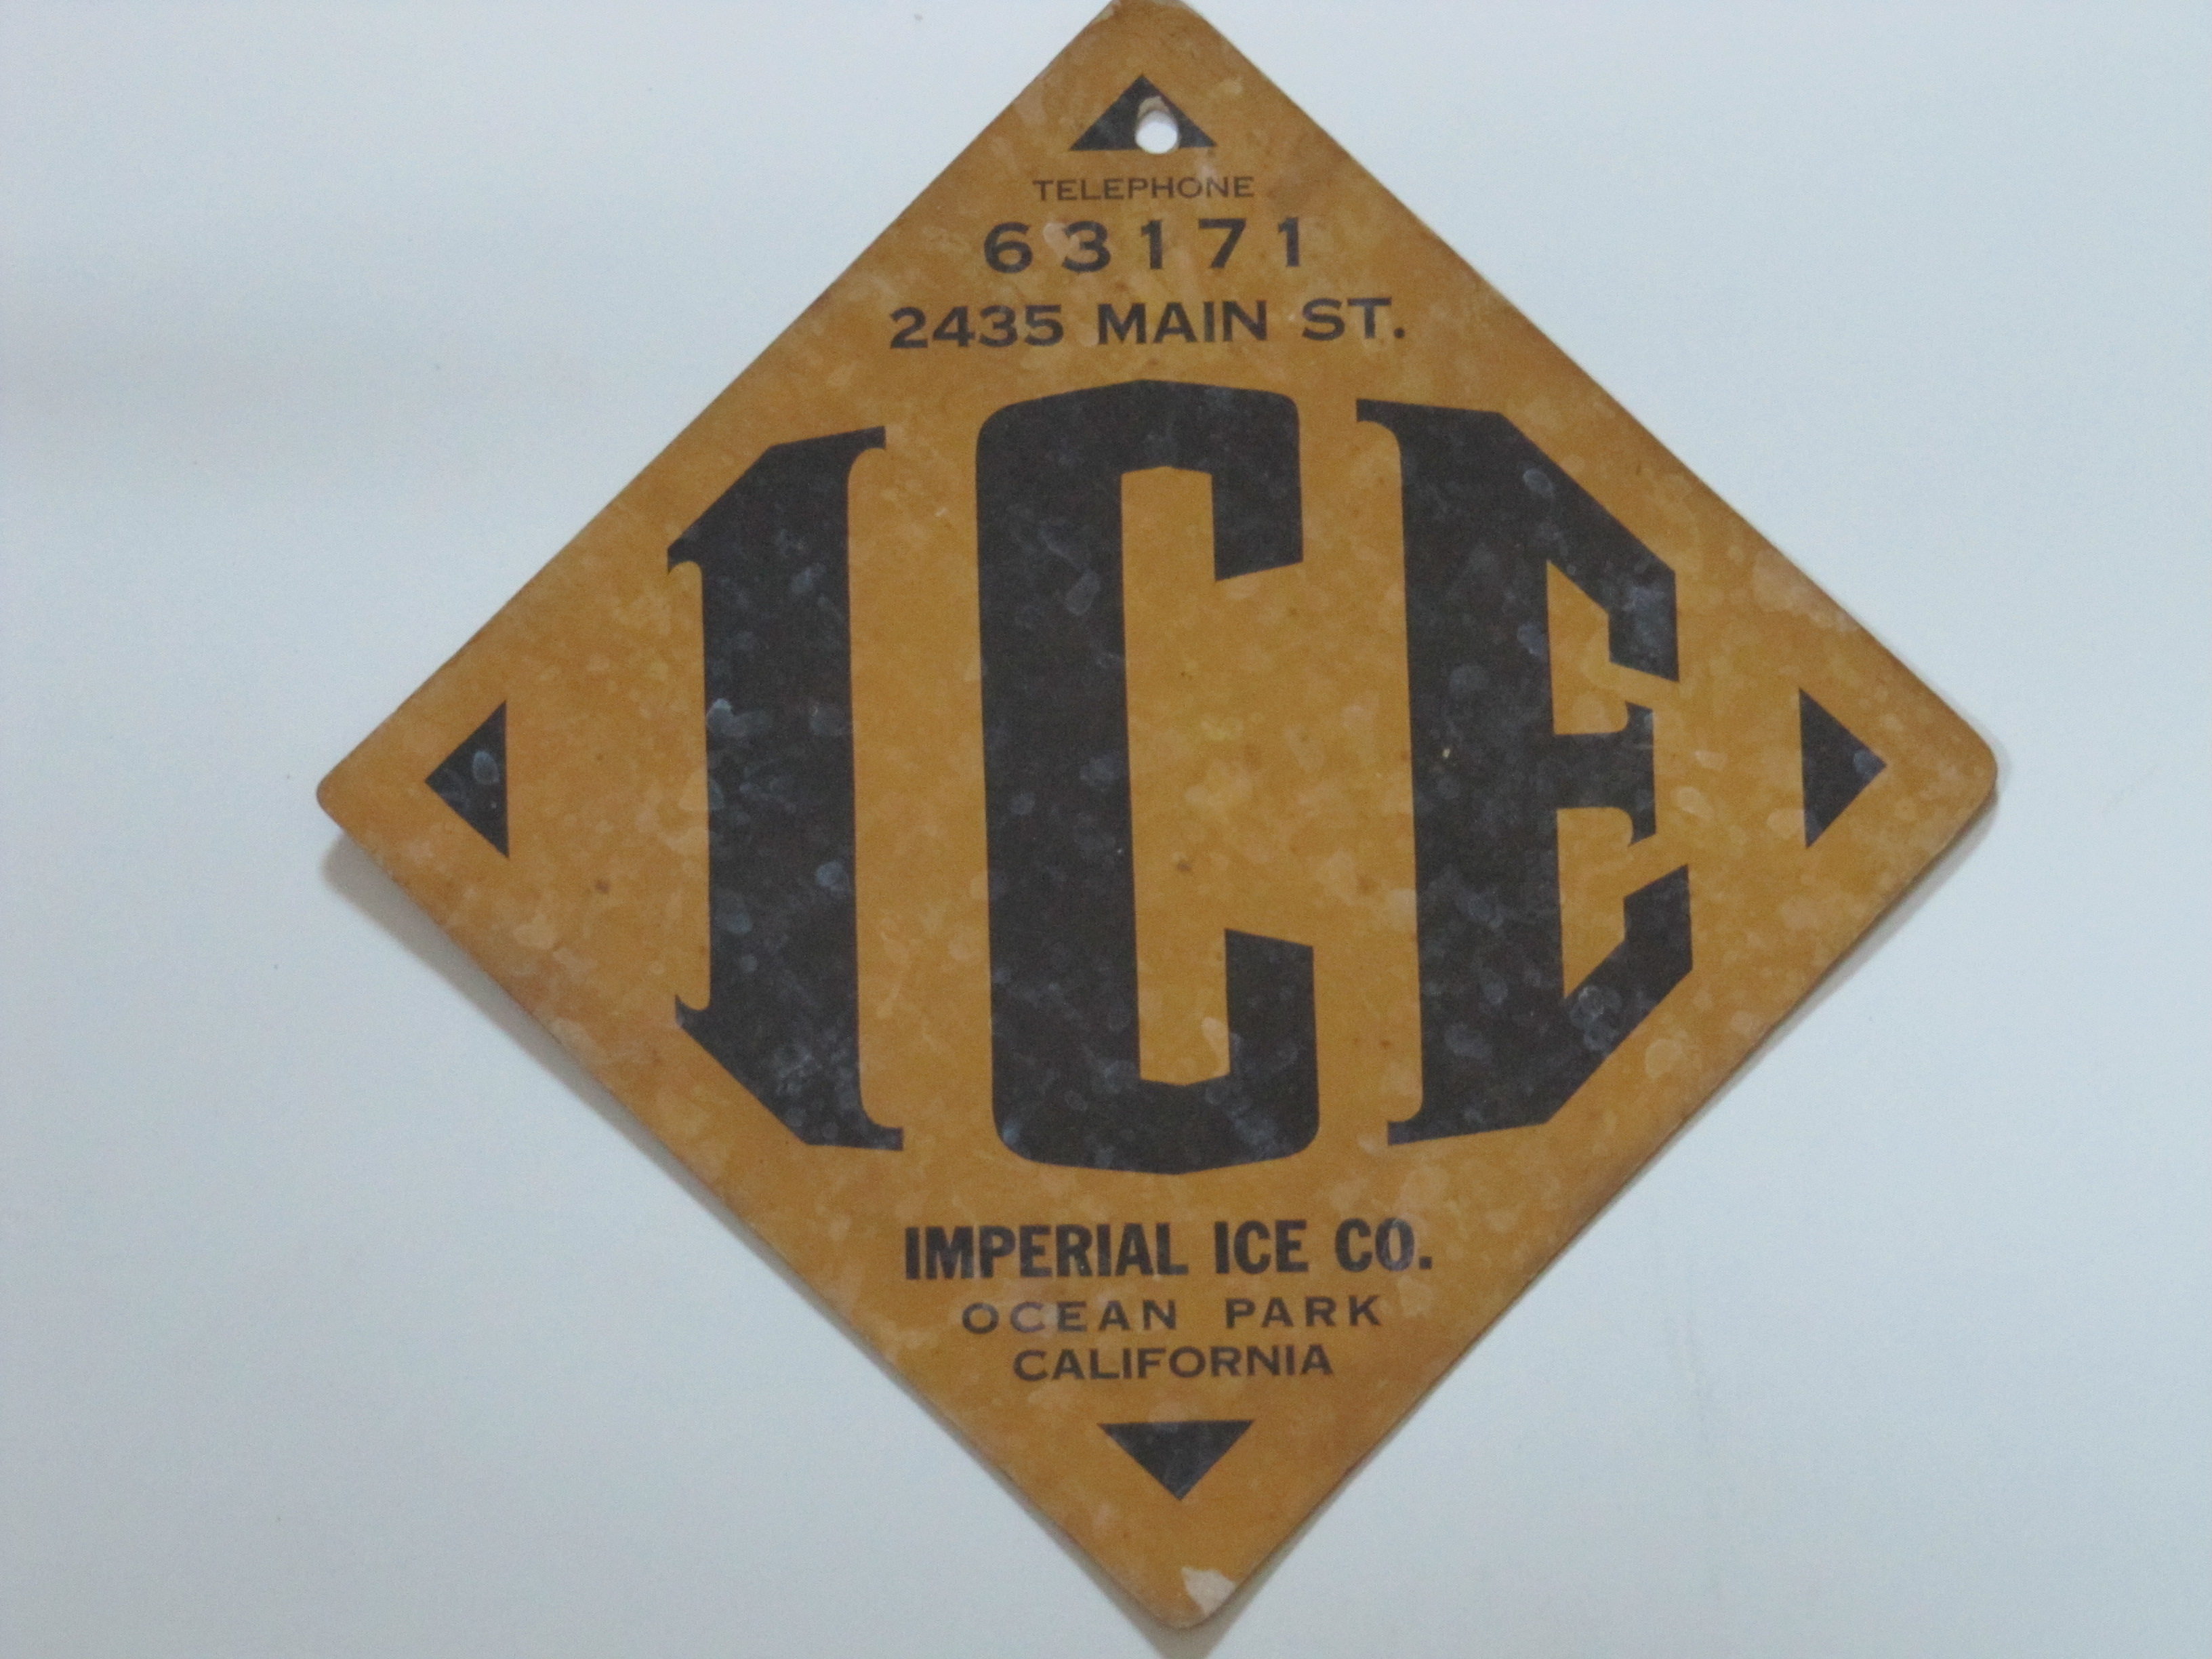 Imperial Ice Co.